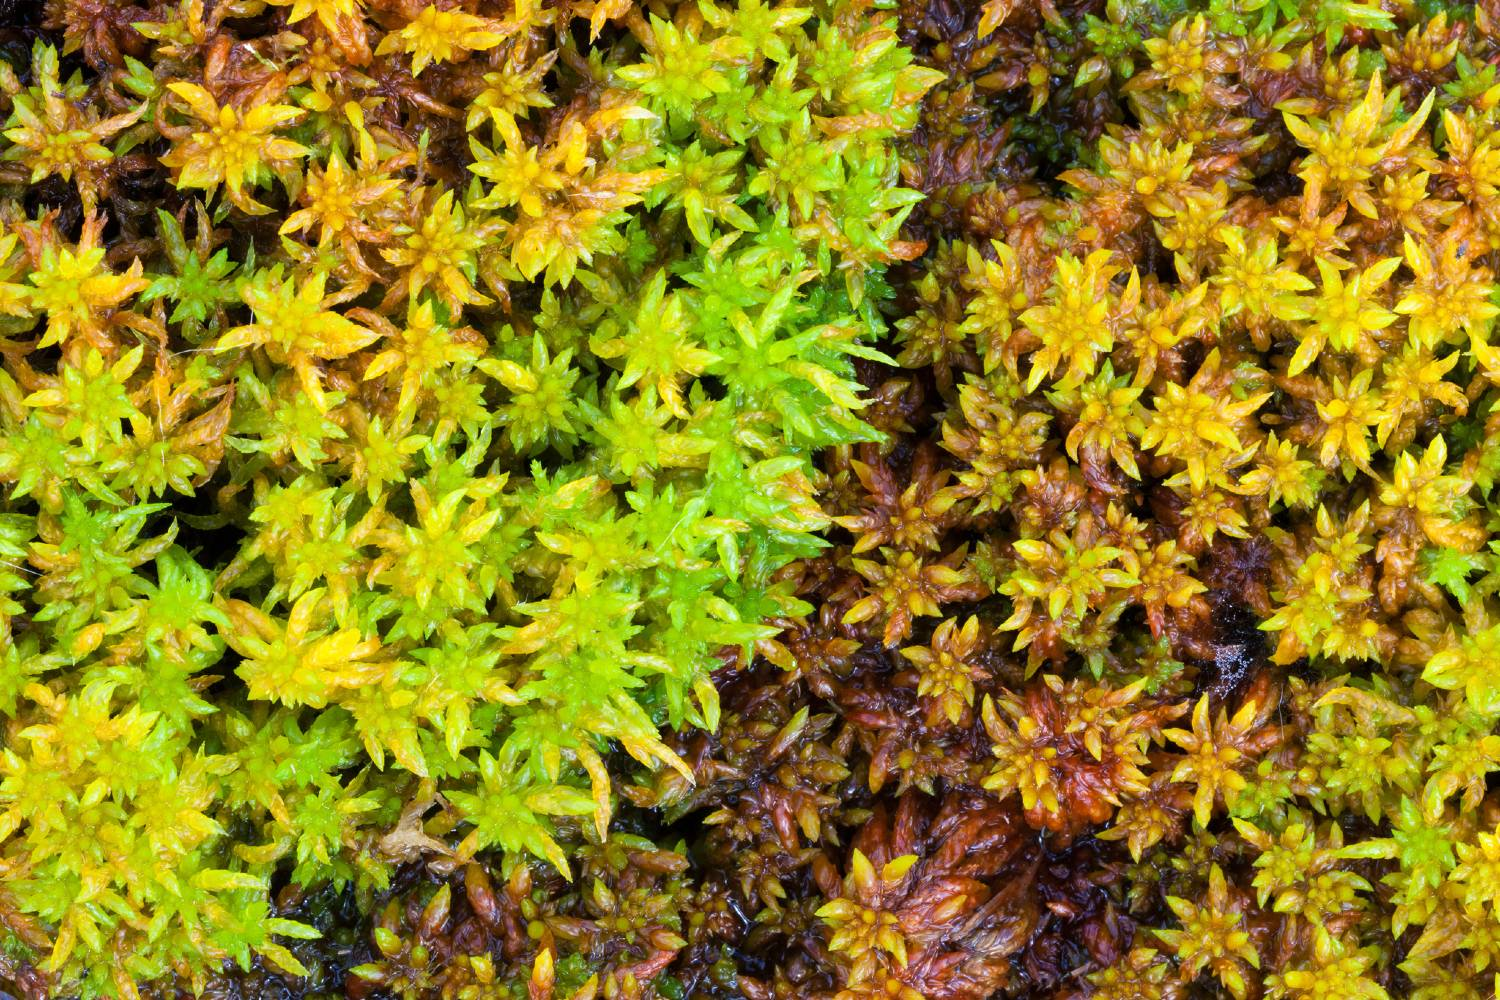 Colourful sphagnum